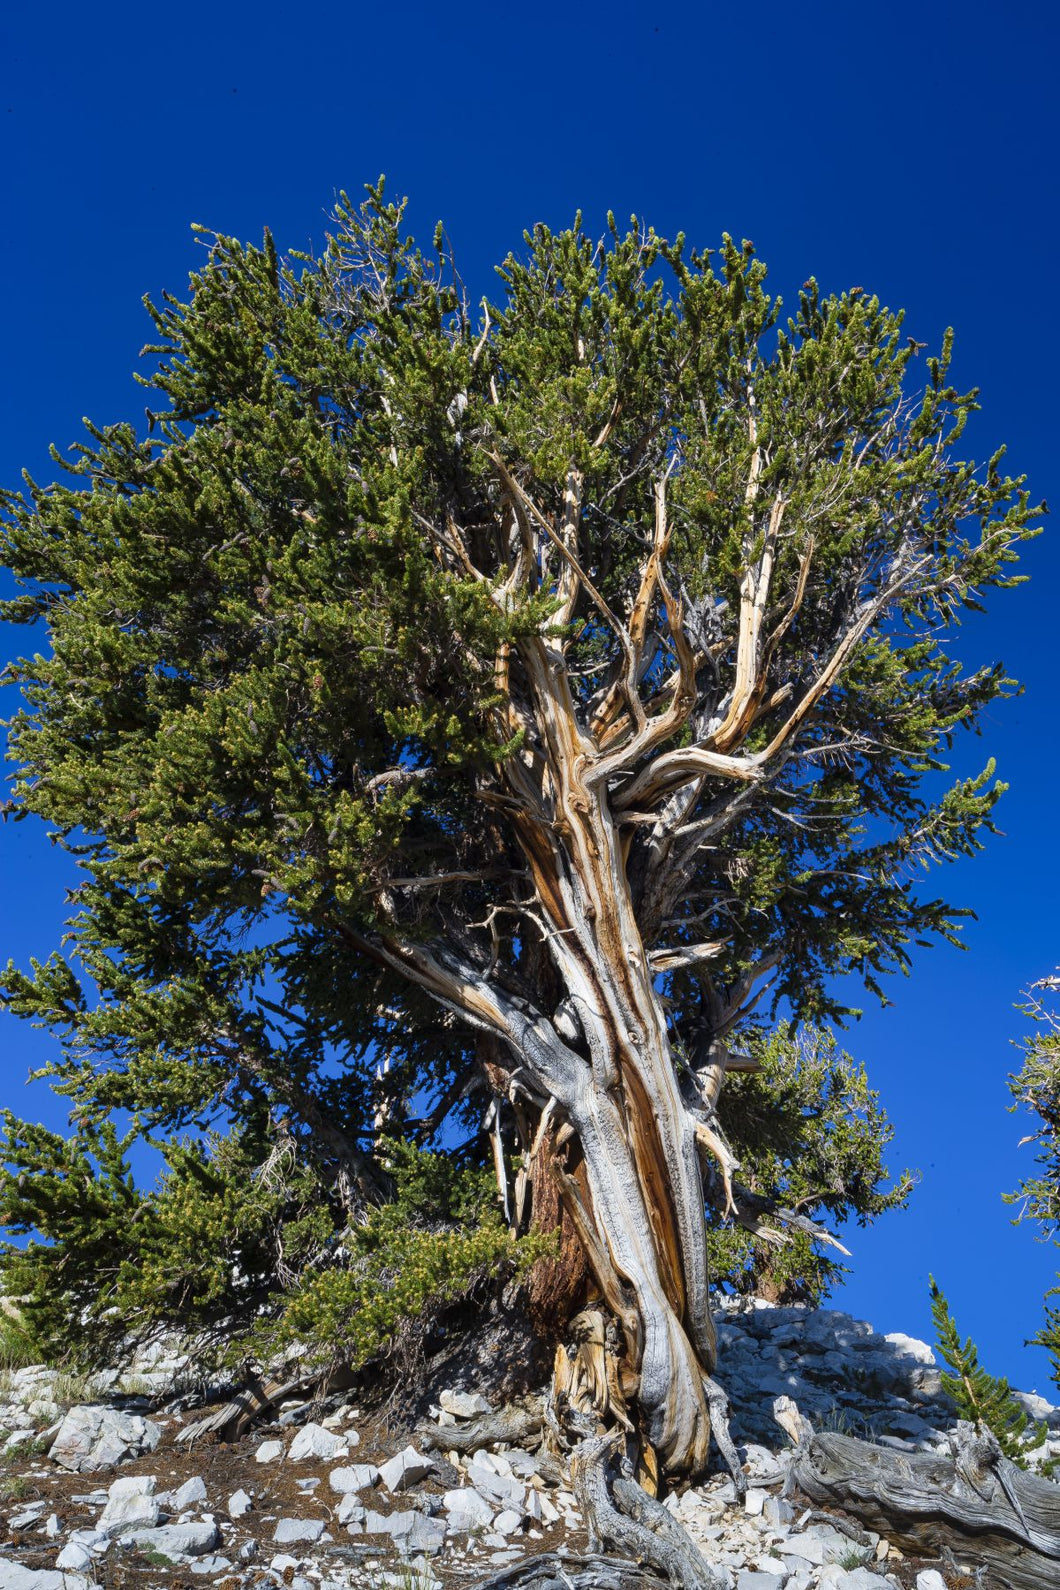 Low angle view of pine tree in Ancient Bristlecone Pine Forest in the White Mountains, Inyo County, California, USA